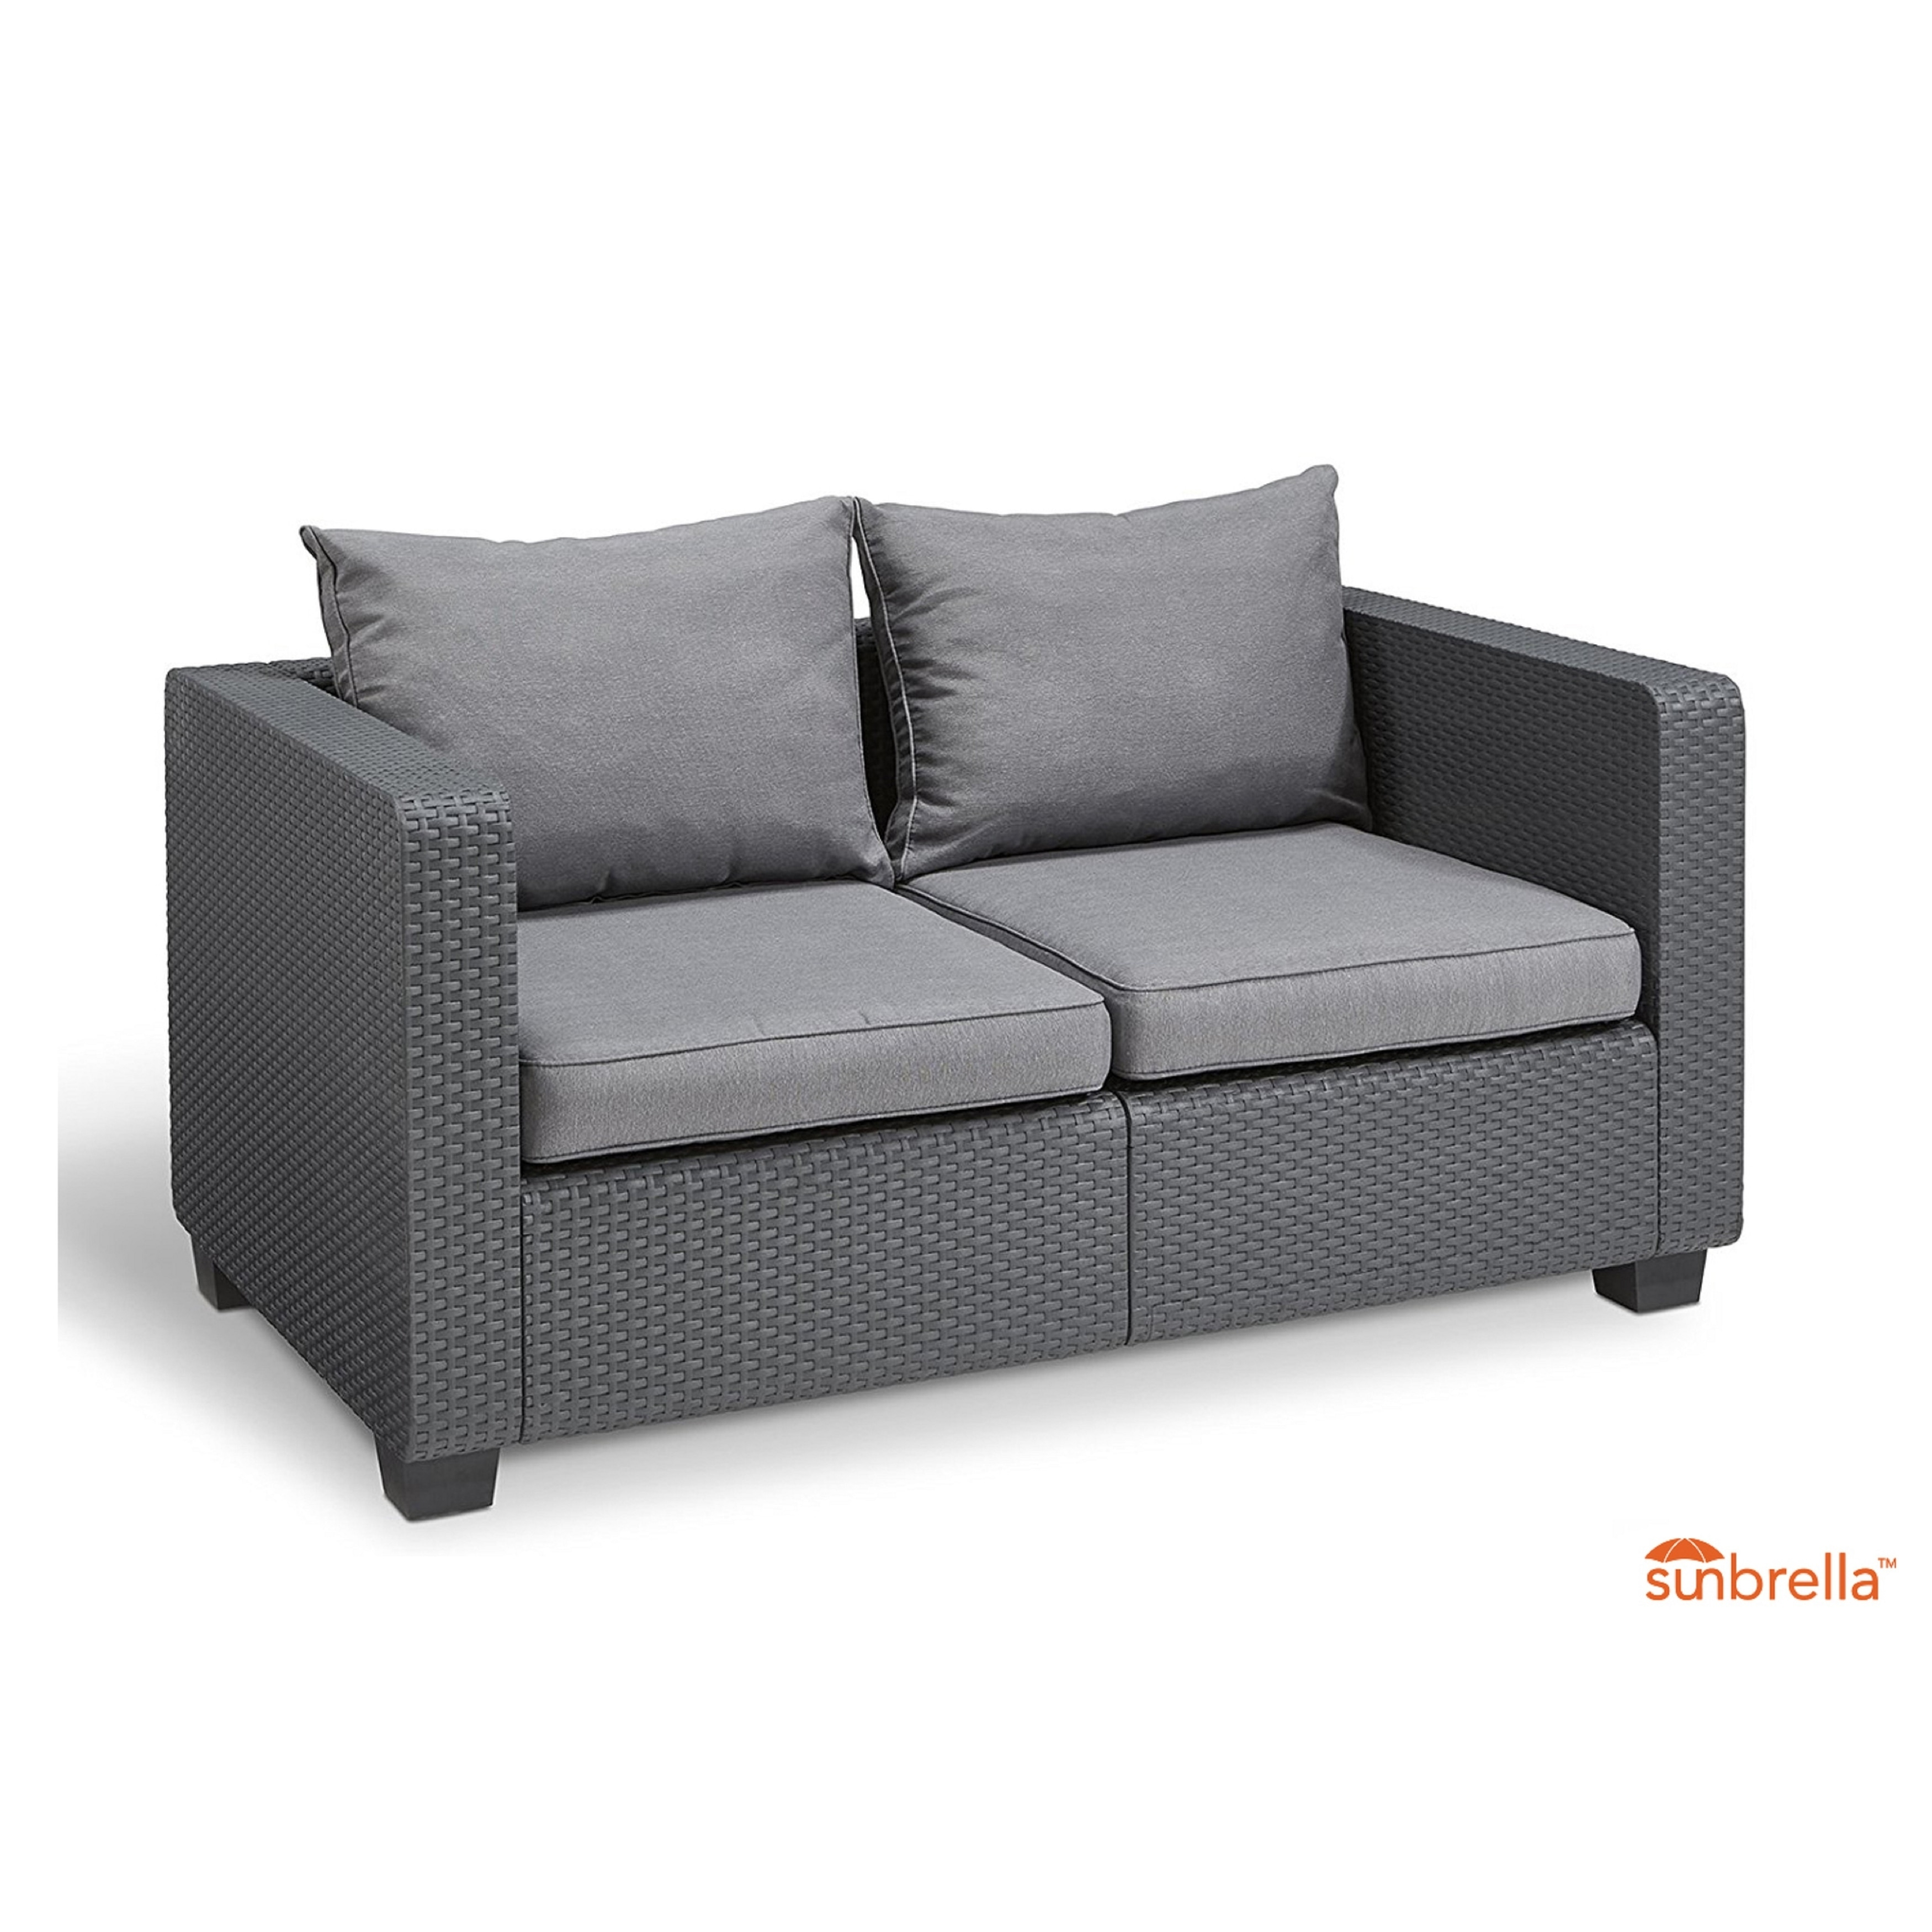 Genial Shop Keter Salta All Weather Outdoor Patio Loveseat With Sunbrella Cushions    Free Shipping Today   Overstock.com   20310217